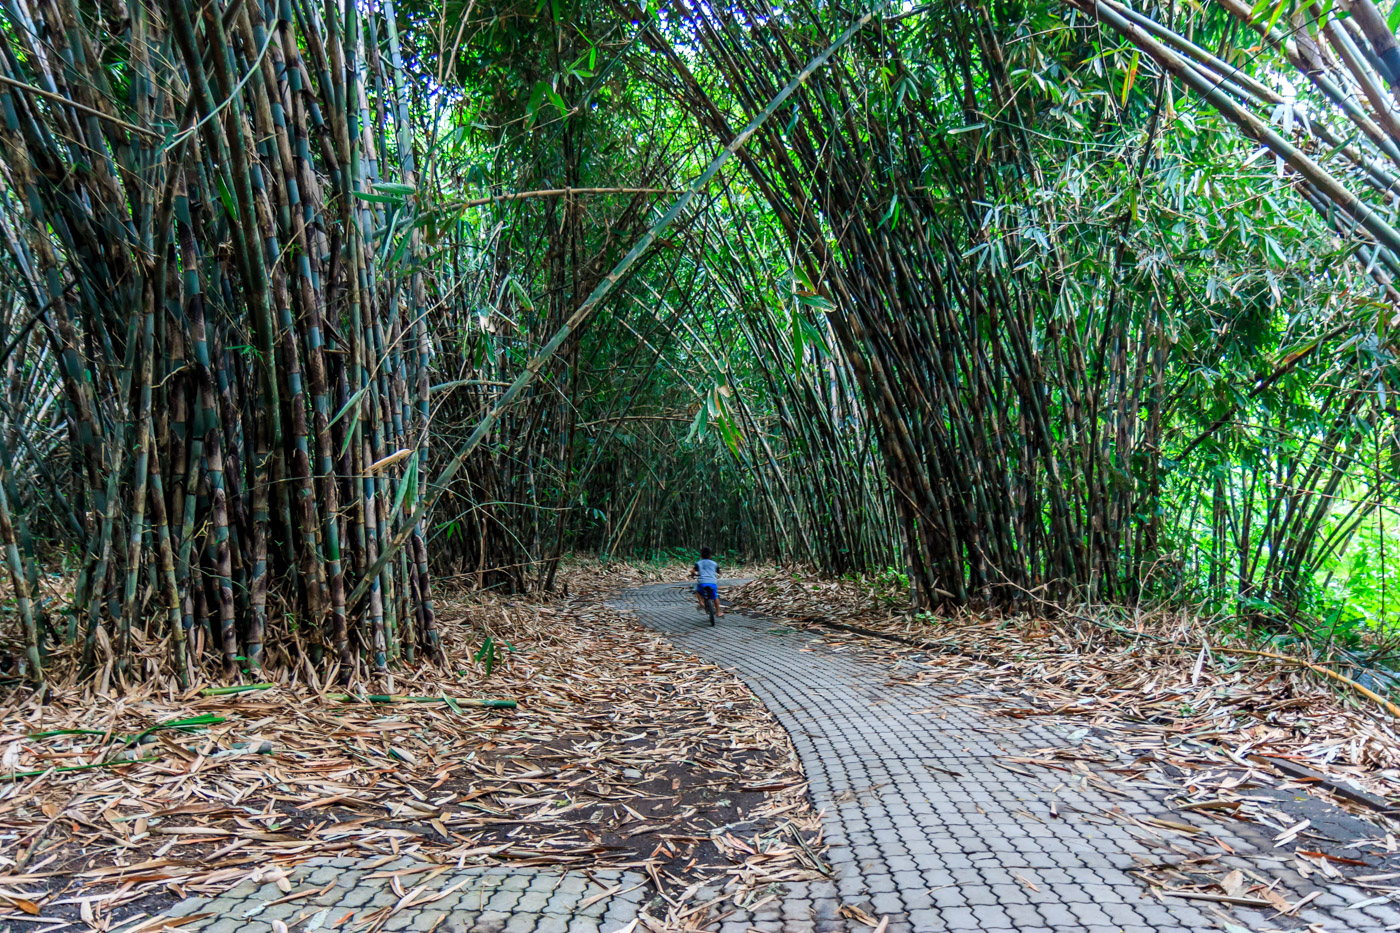 Riding in the bamboo forest.